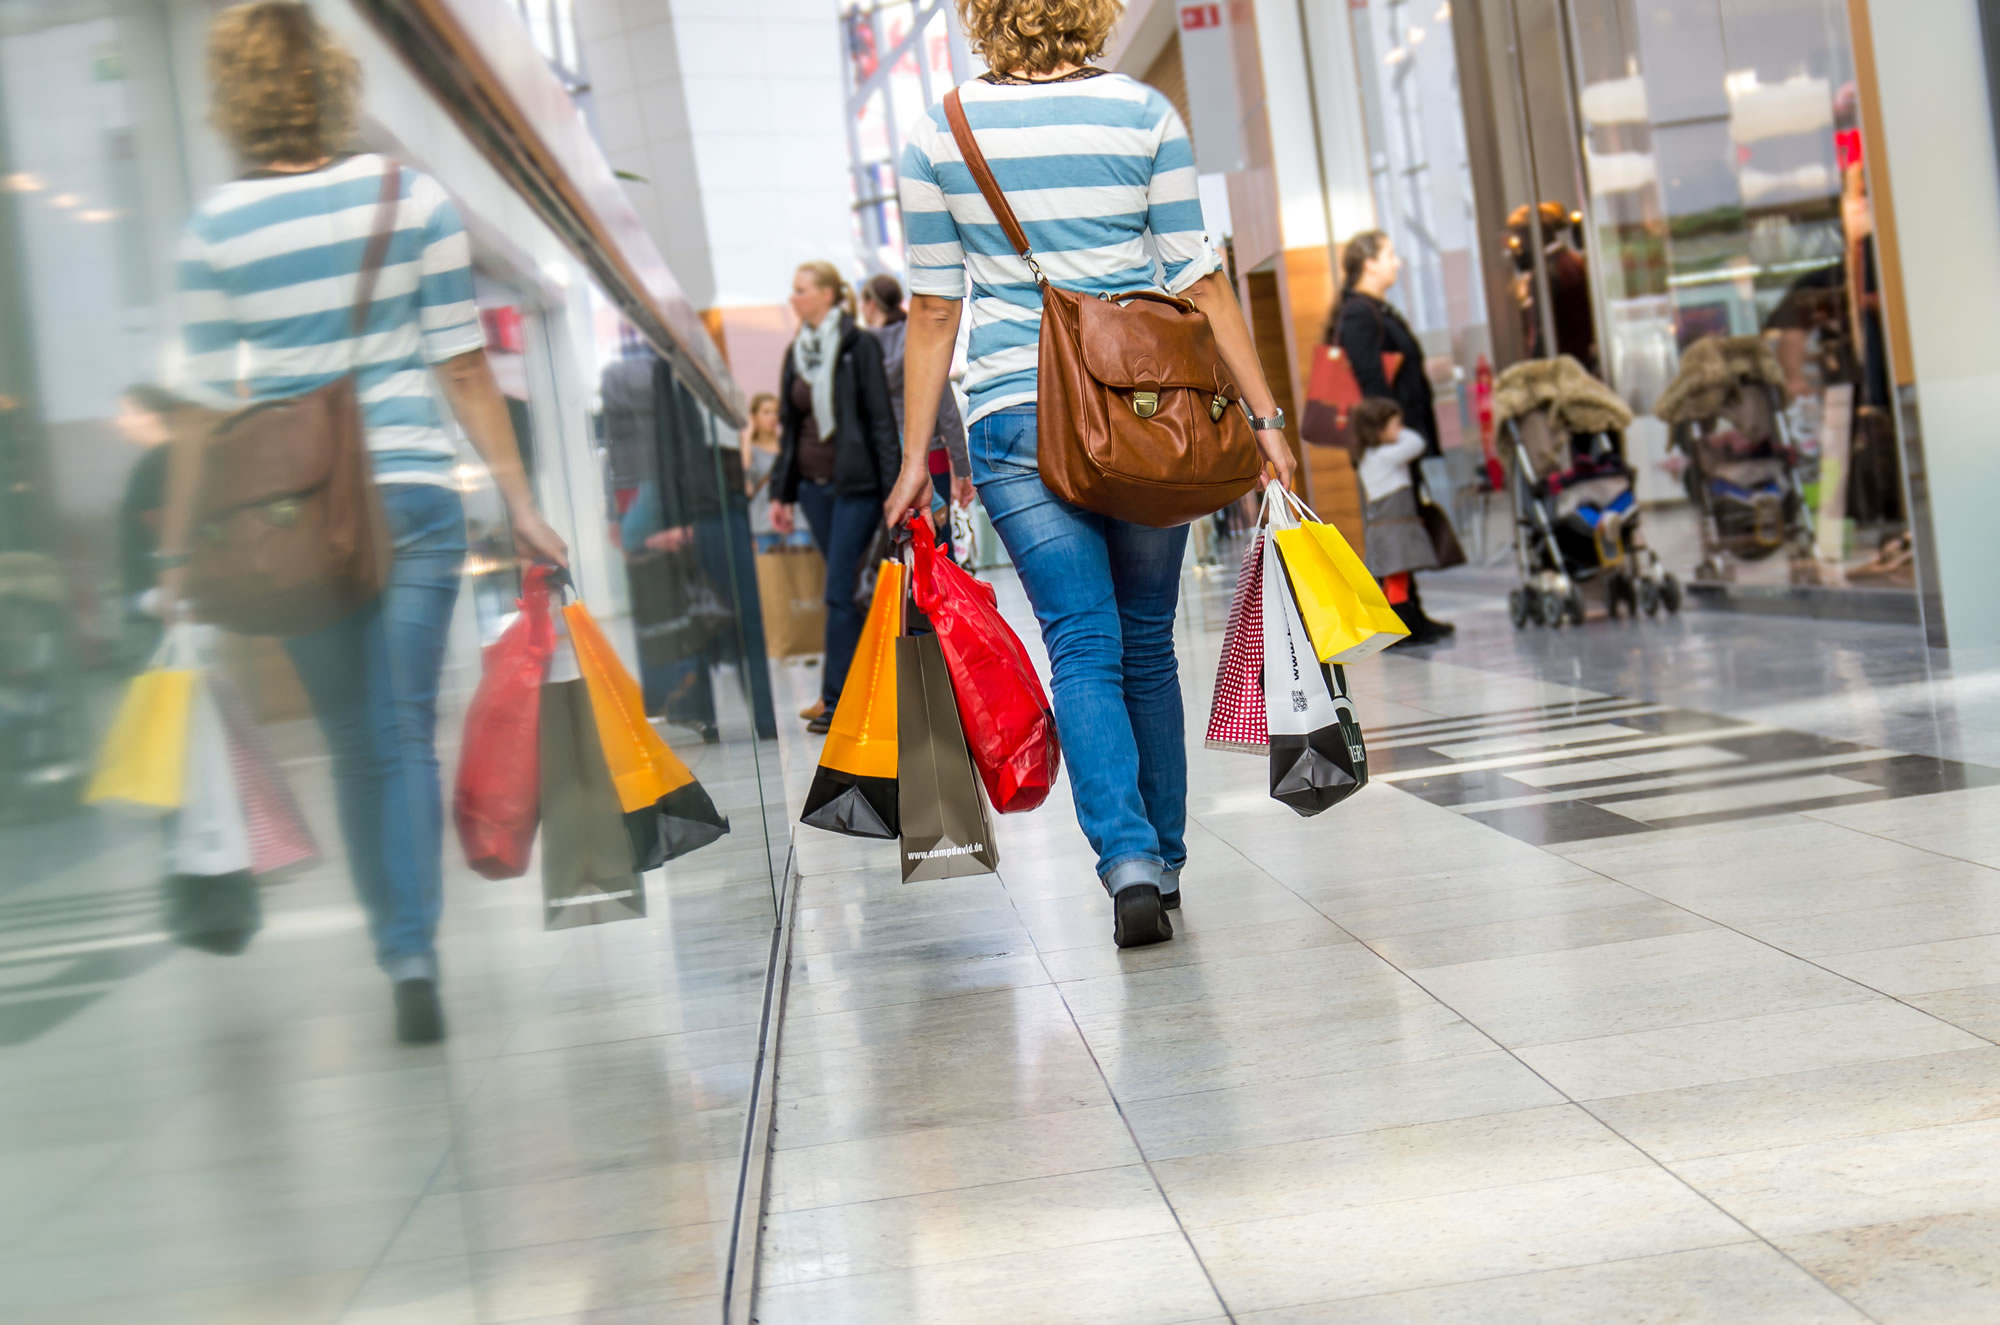 Shopping and Store Injury Compensation - No Win, No Fee / Accident & Personal Injury Solicitors / Accident Claims UK